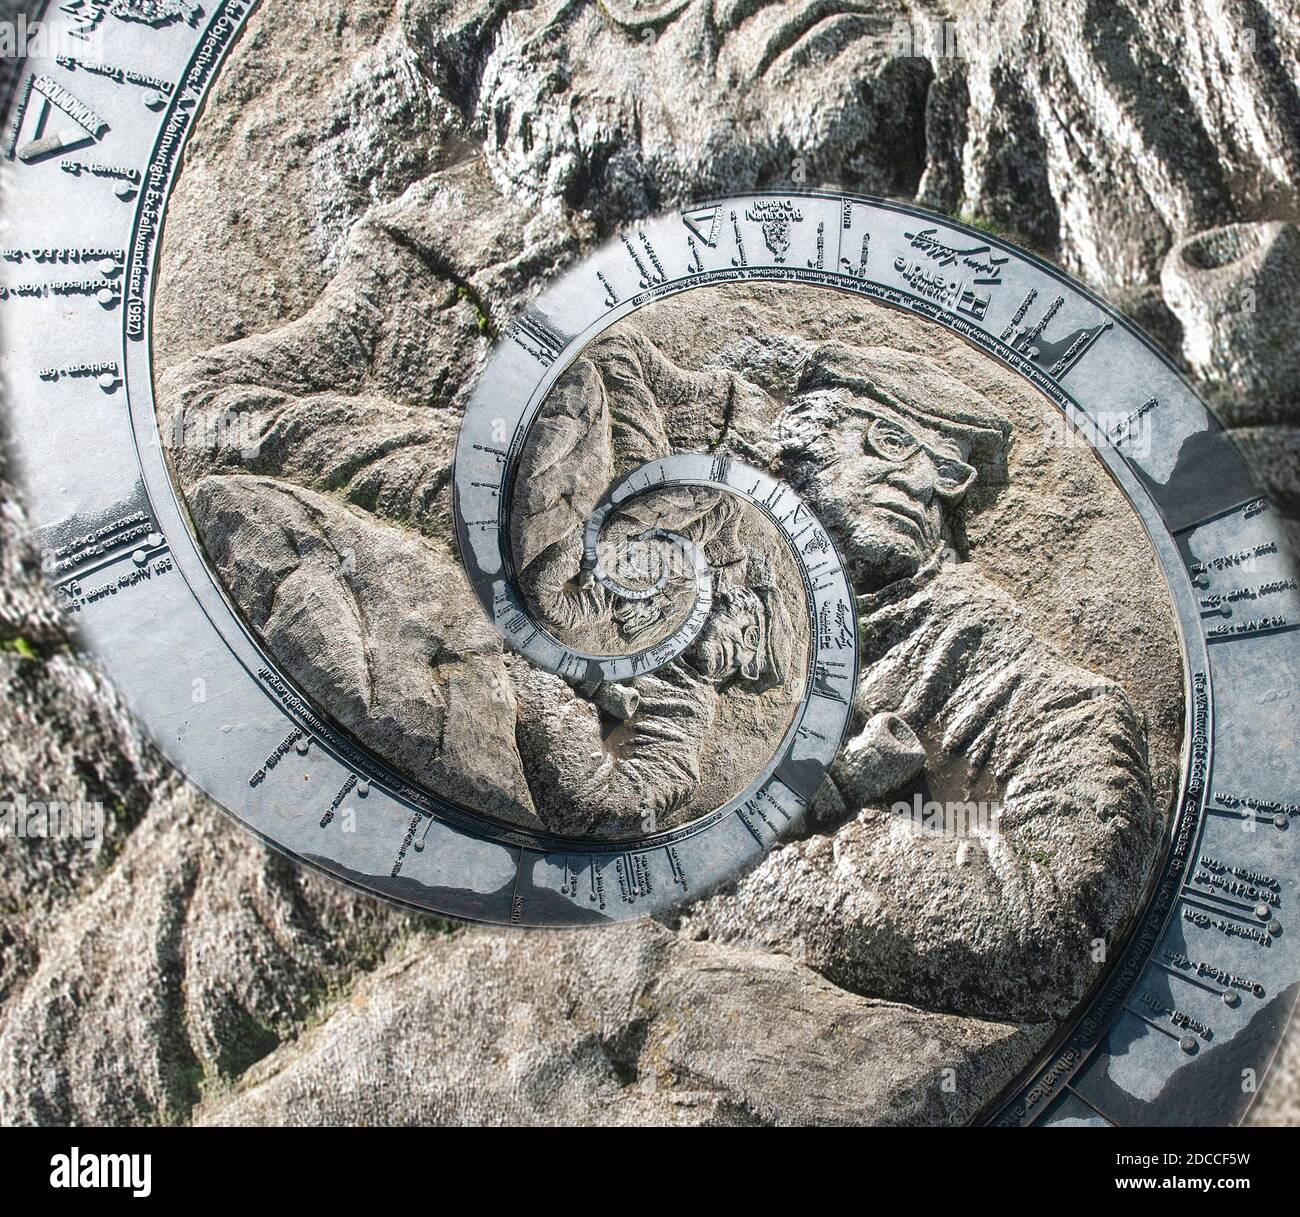 Around the UK - images with a twist. Abstract spherical distorted images. Alfred Wainwright Memorial, distorted into a spiral. Stock Photo